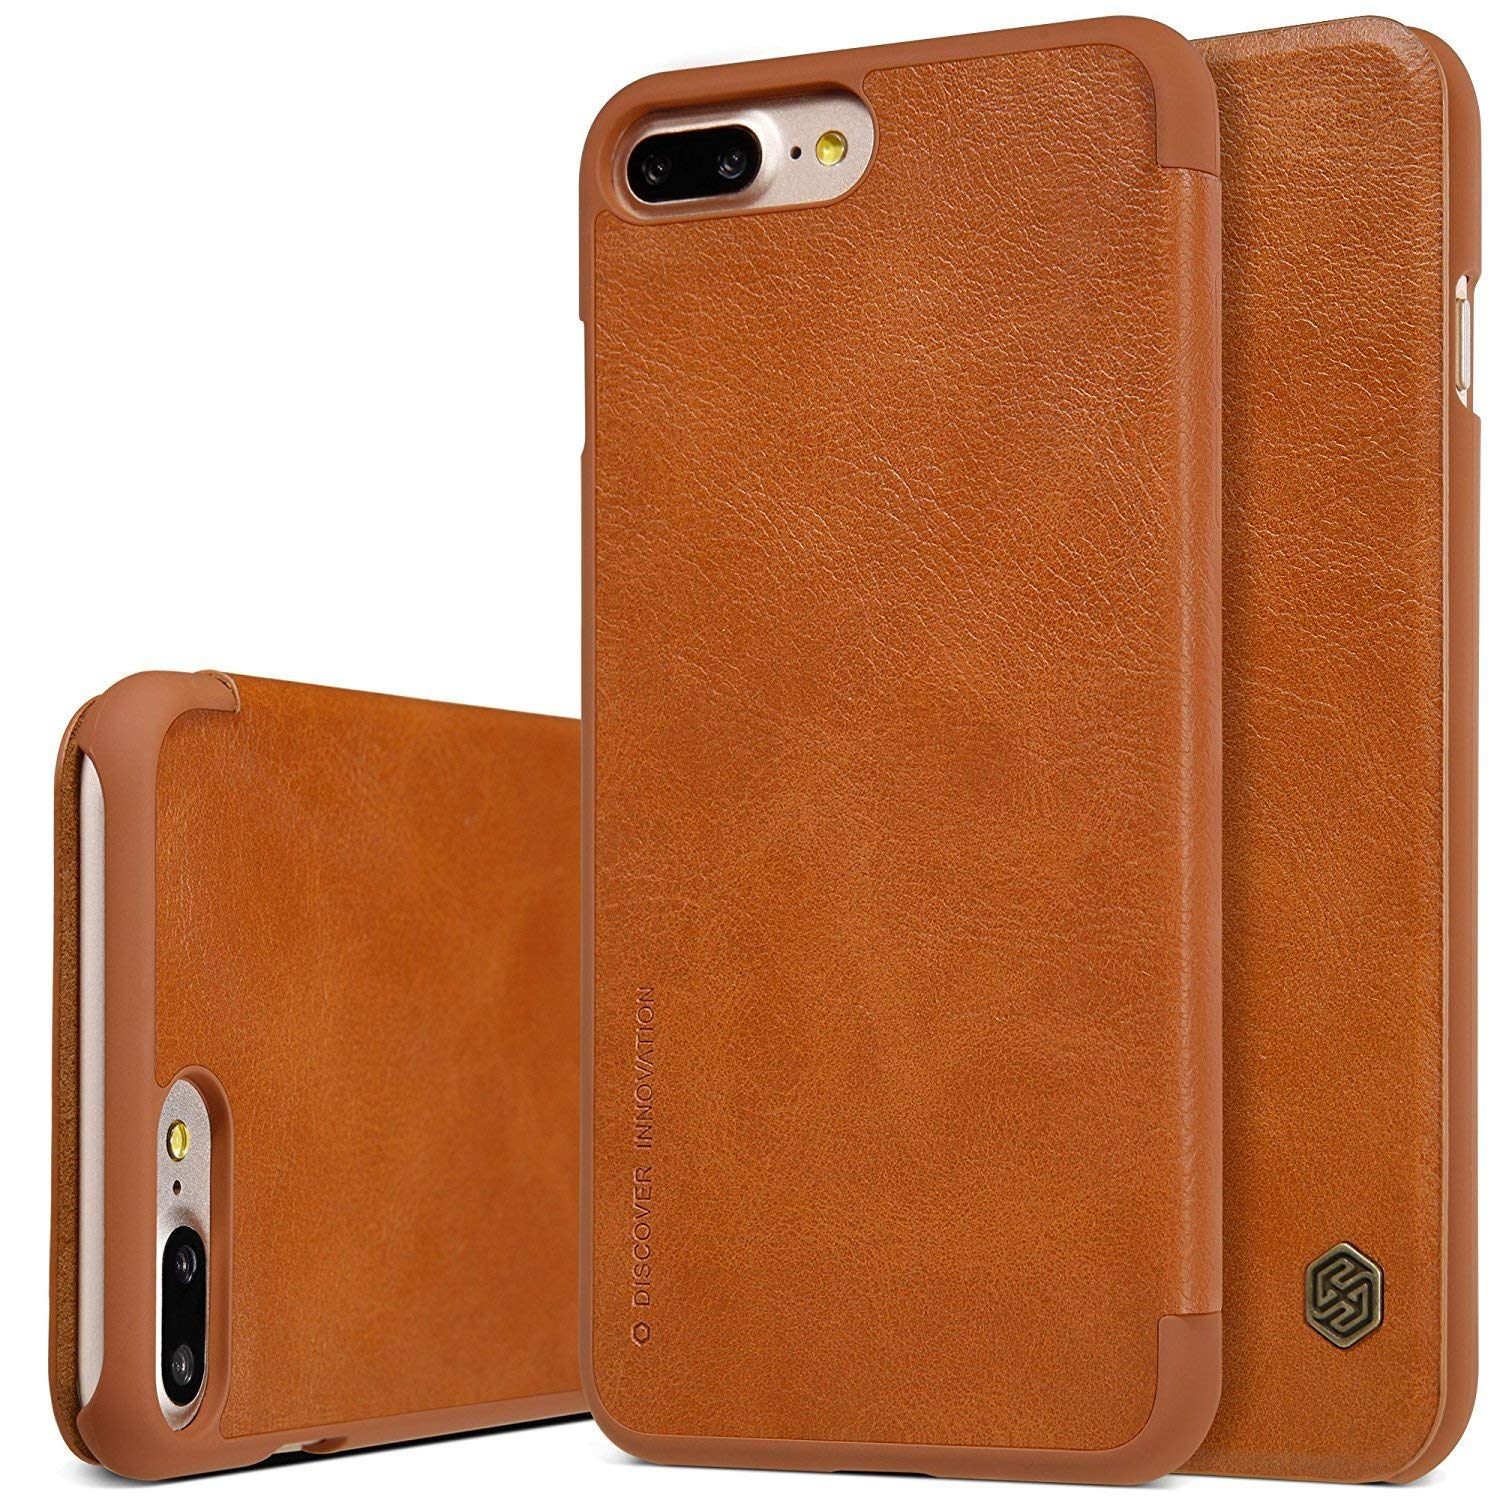 Nillkin Qin Leather iPhone 7 Plus / 8 Plus brown